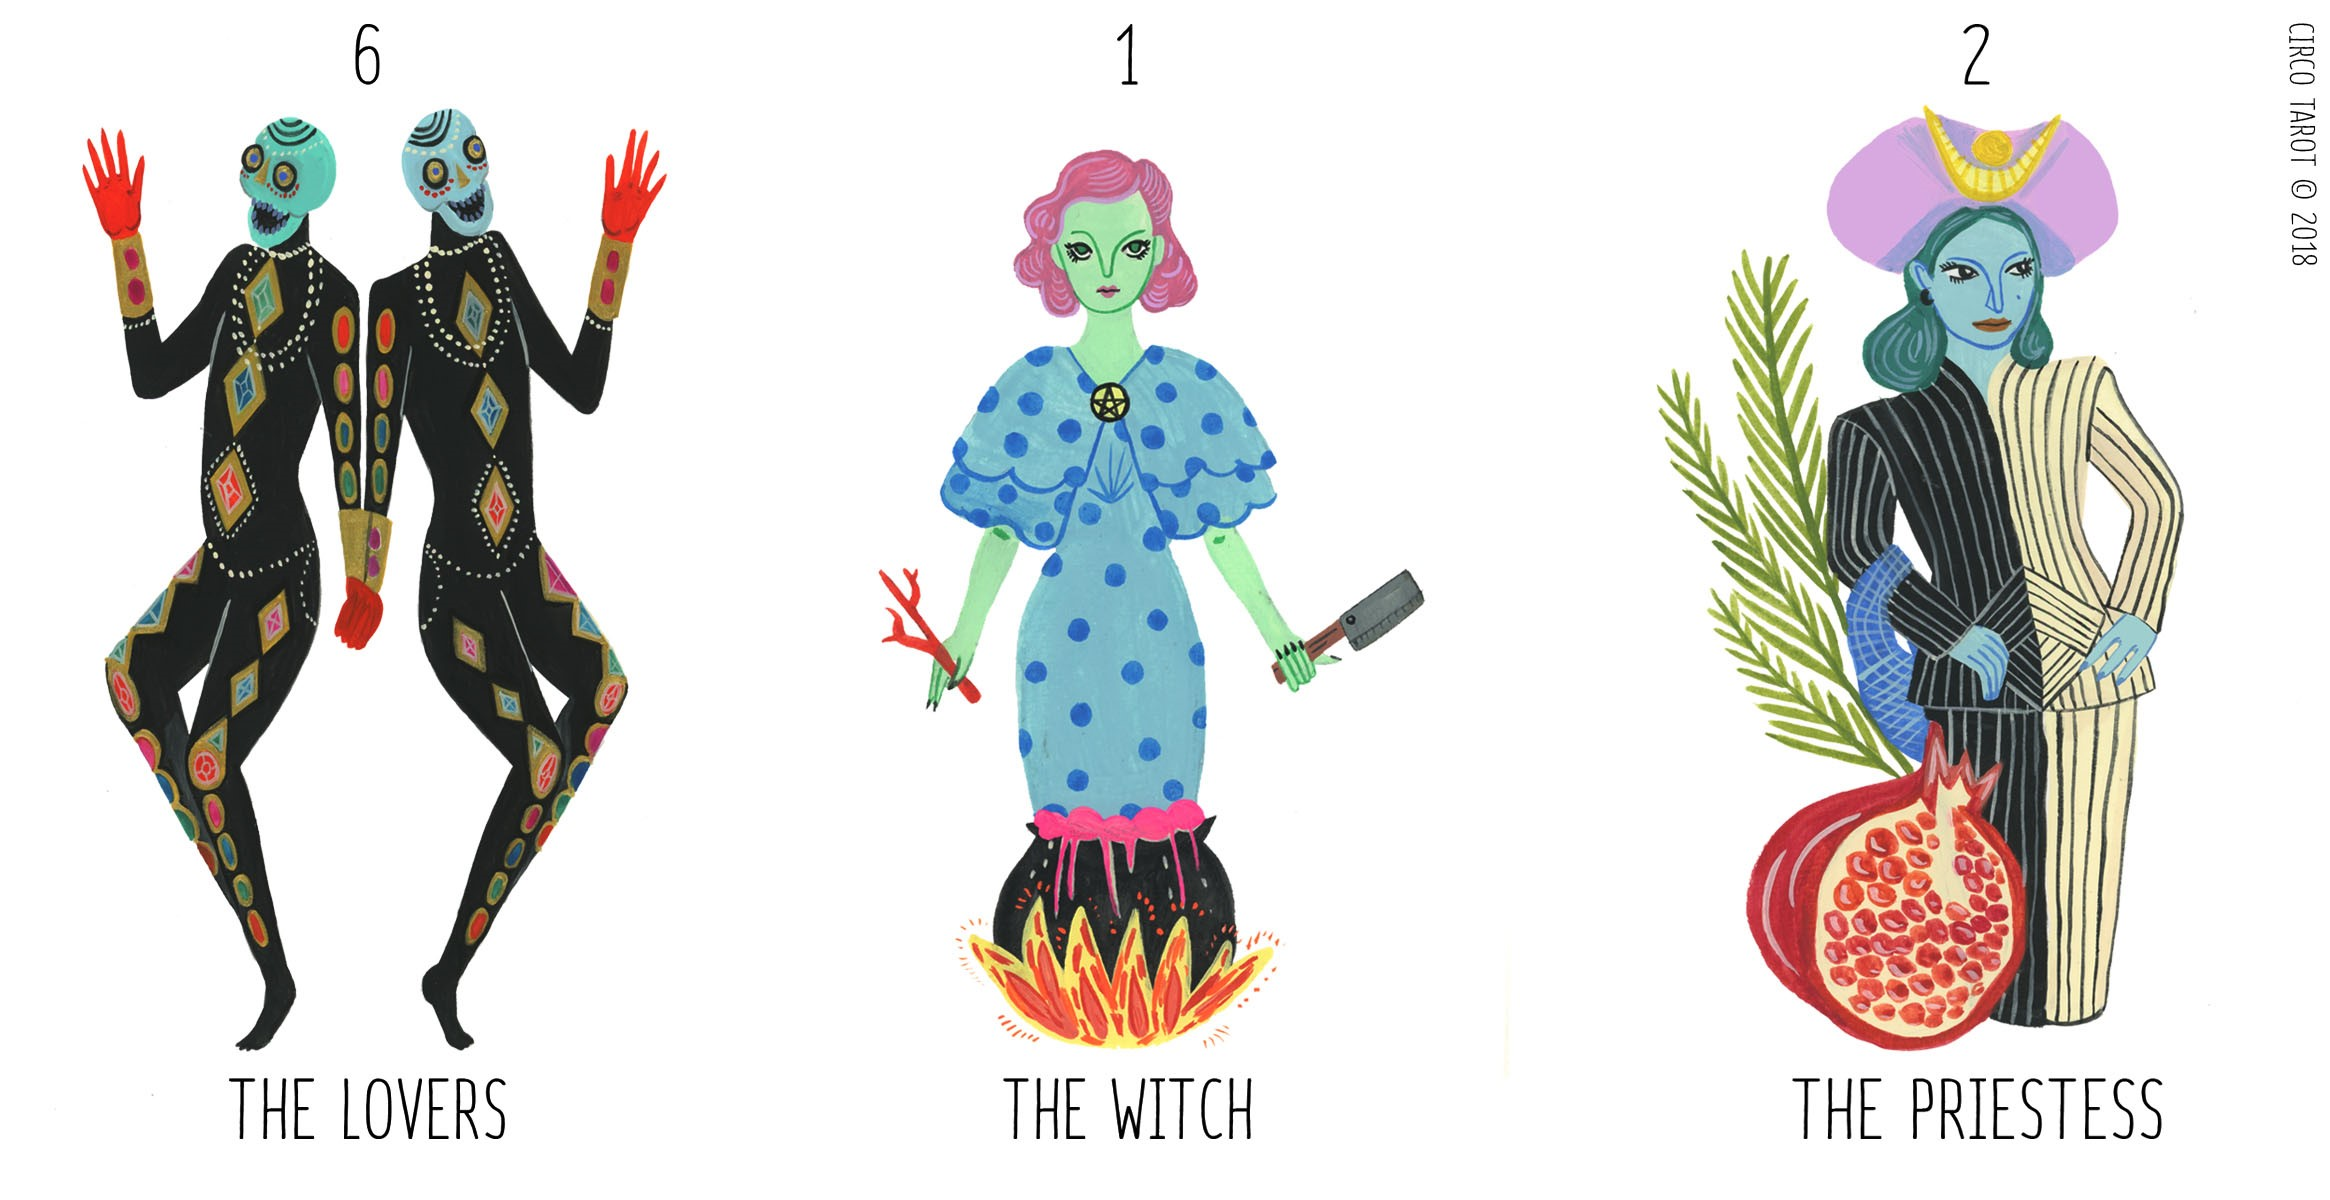 a forthcoming hand-painted deck from Marisa, whose High Priestess has me sprung already!